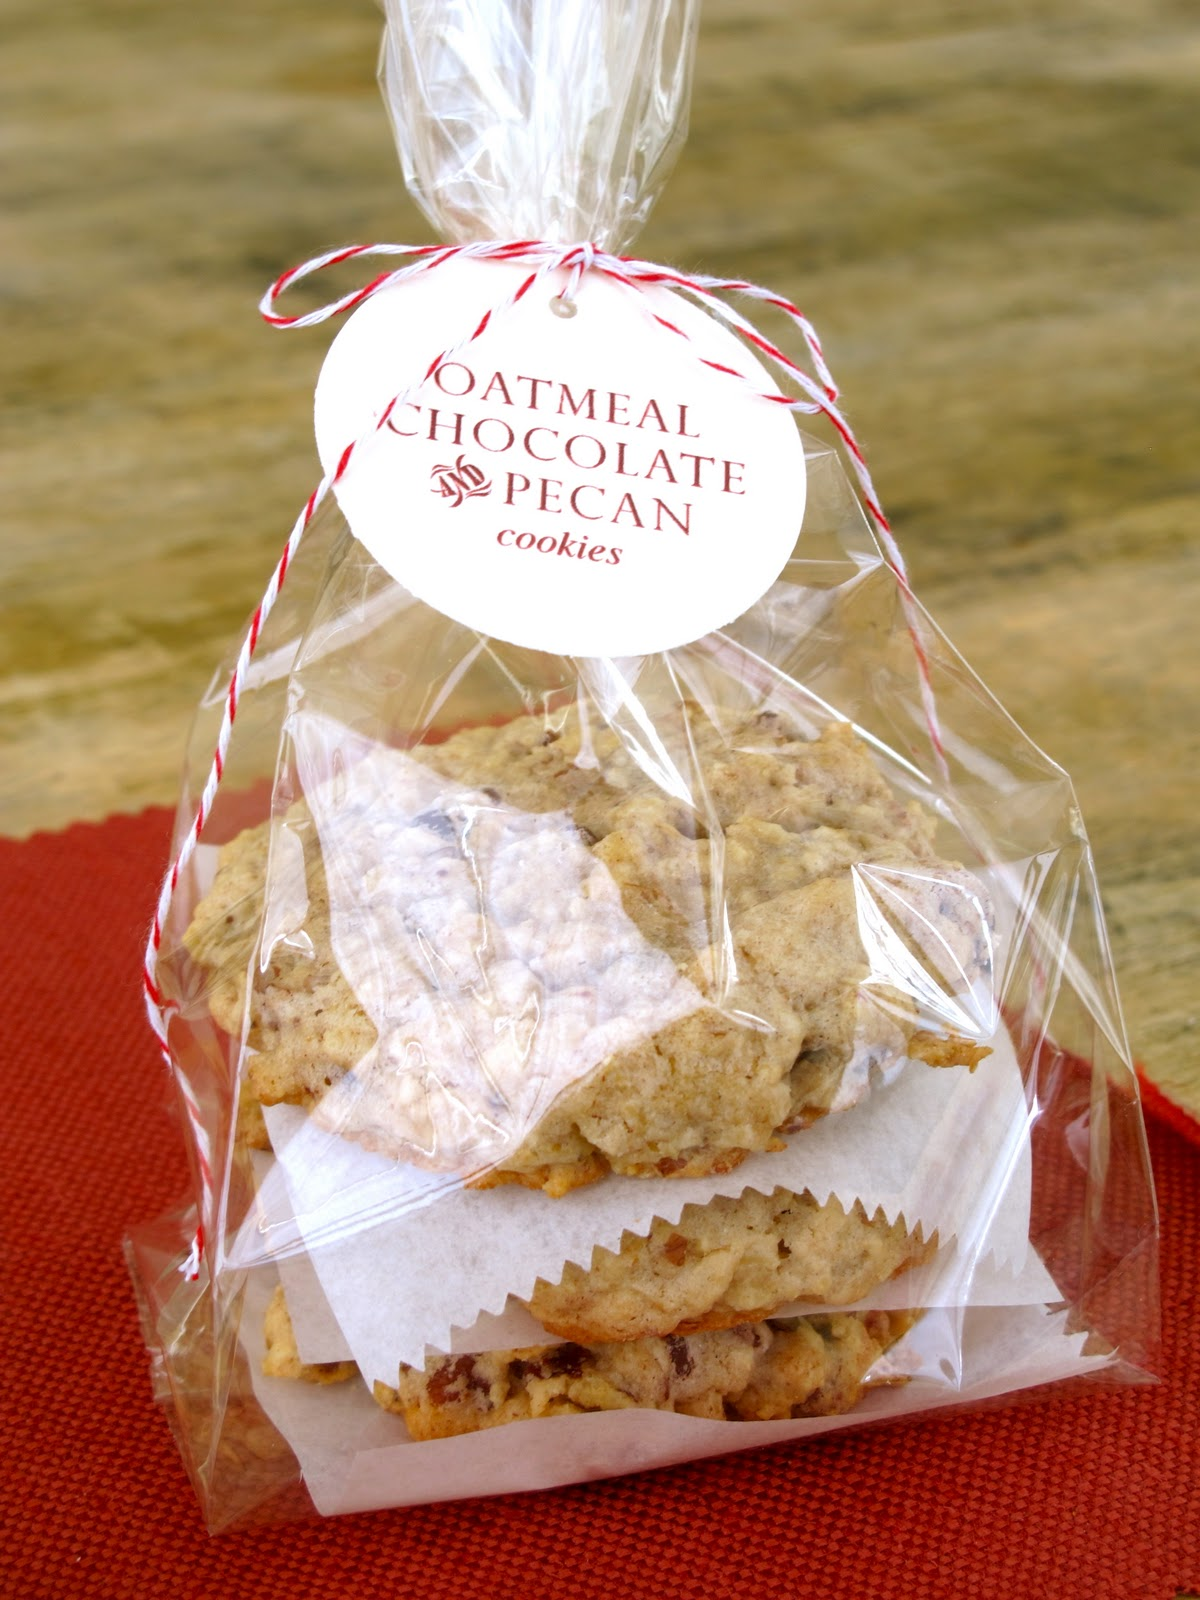 Sachets Transparents Pour Biscuits Jenny Steffens Hobick Pecan Chocolate And Oatmeal Cookies